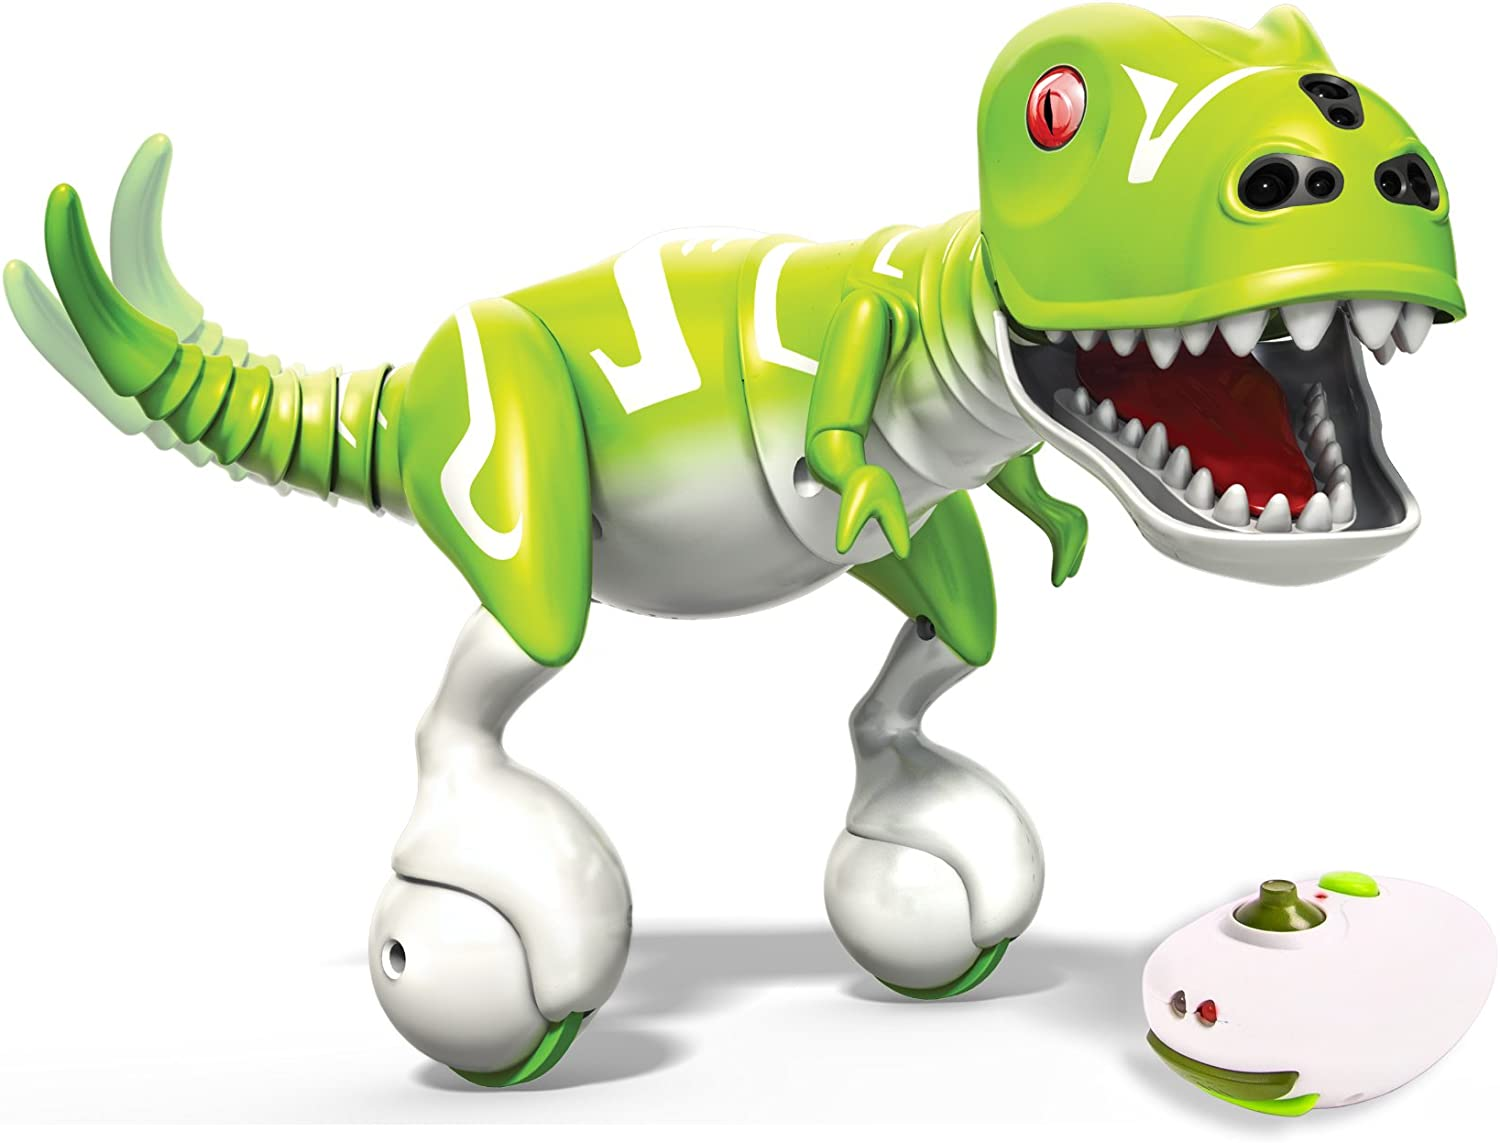 Top 10 Best Remote Control Dinosaurs (Gift Idea) For Toddlers 3